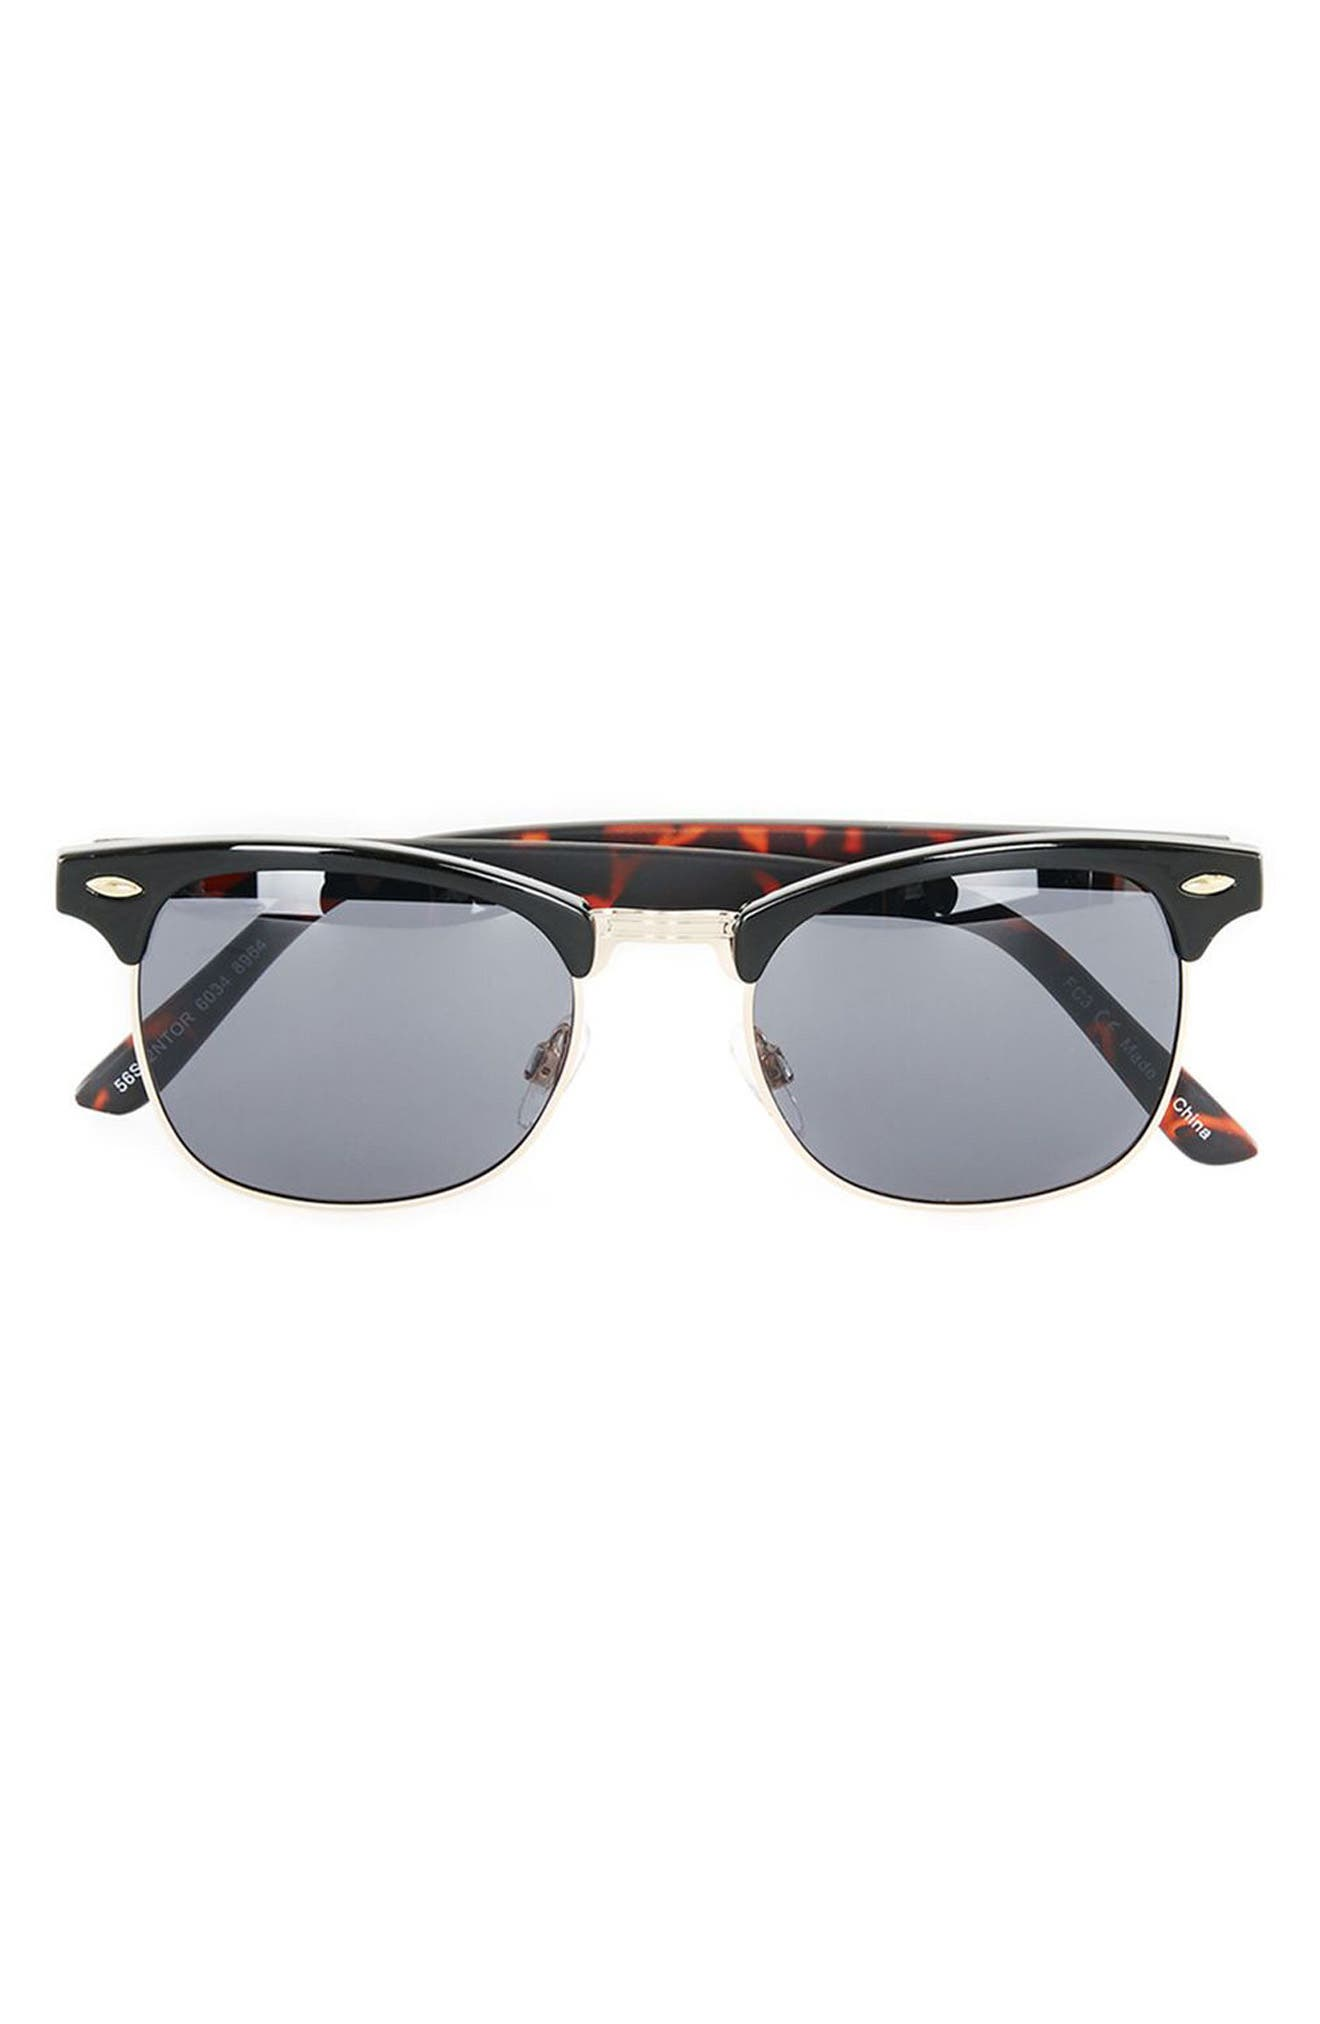 Clubmaster 50mm Sunglasses,                         Main,                         color, 200